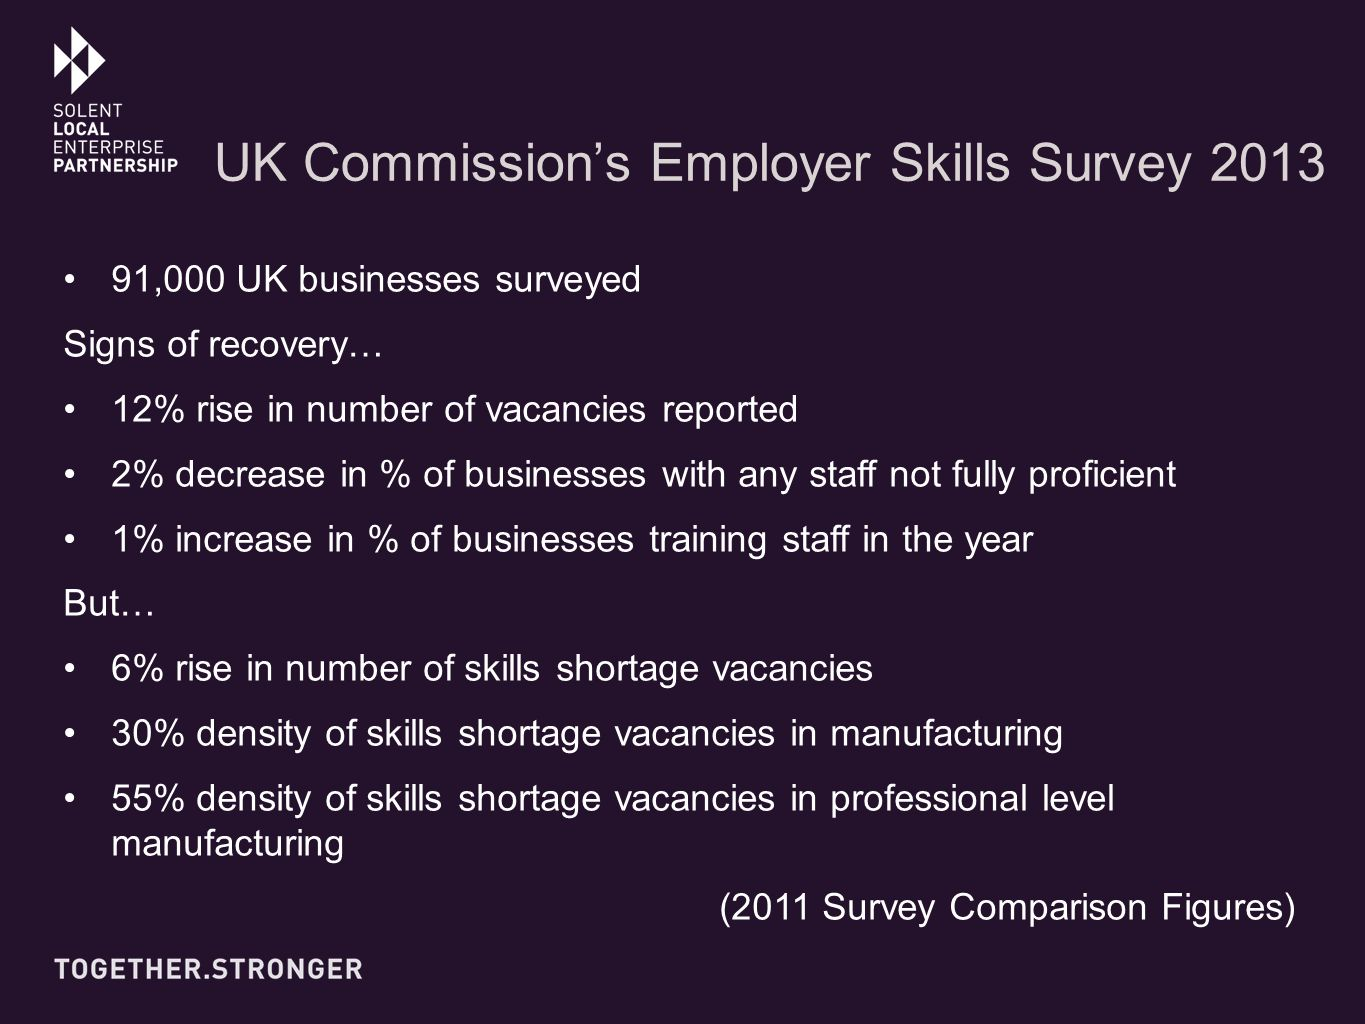 UK Commission's Employer Skills Survey 2013 91,000 UK businesses surveyed Signs of recovery… 12% rise in number of vacancies reported 2% decrease in % of businesses with any staff not fully proficient 1% increase in % of businesses training staff in the year But… 6% rise in number of skills shortage vacancies 30% density of skills shortage vacancies in manufacturing 55% density of skills shortage vacancies in professional level manufacturing (2011 Survey Comparison Figures)